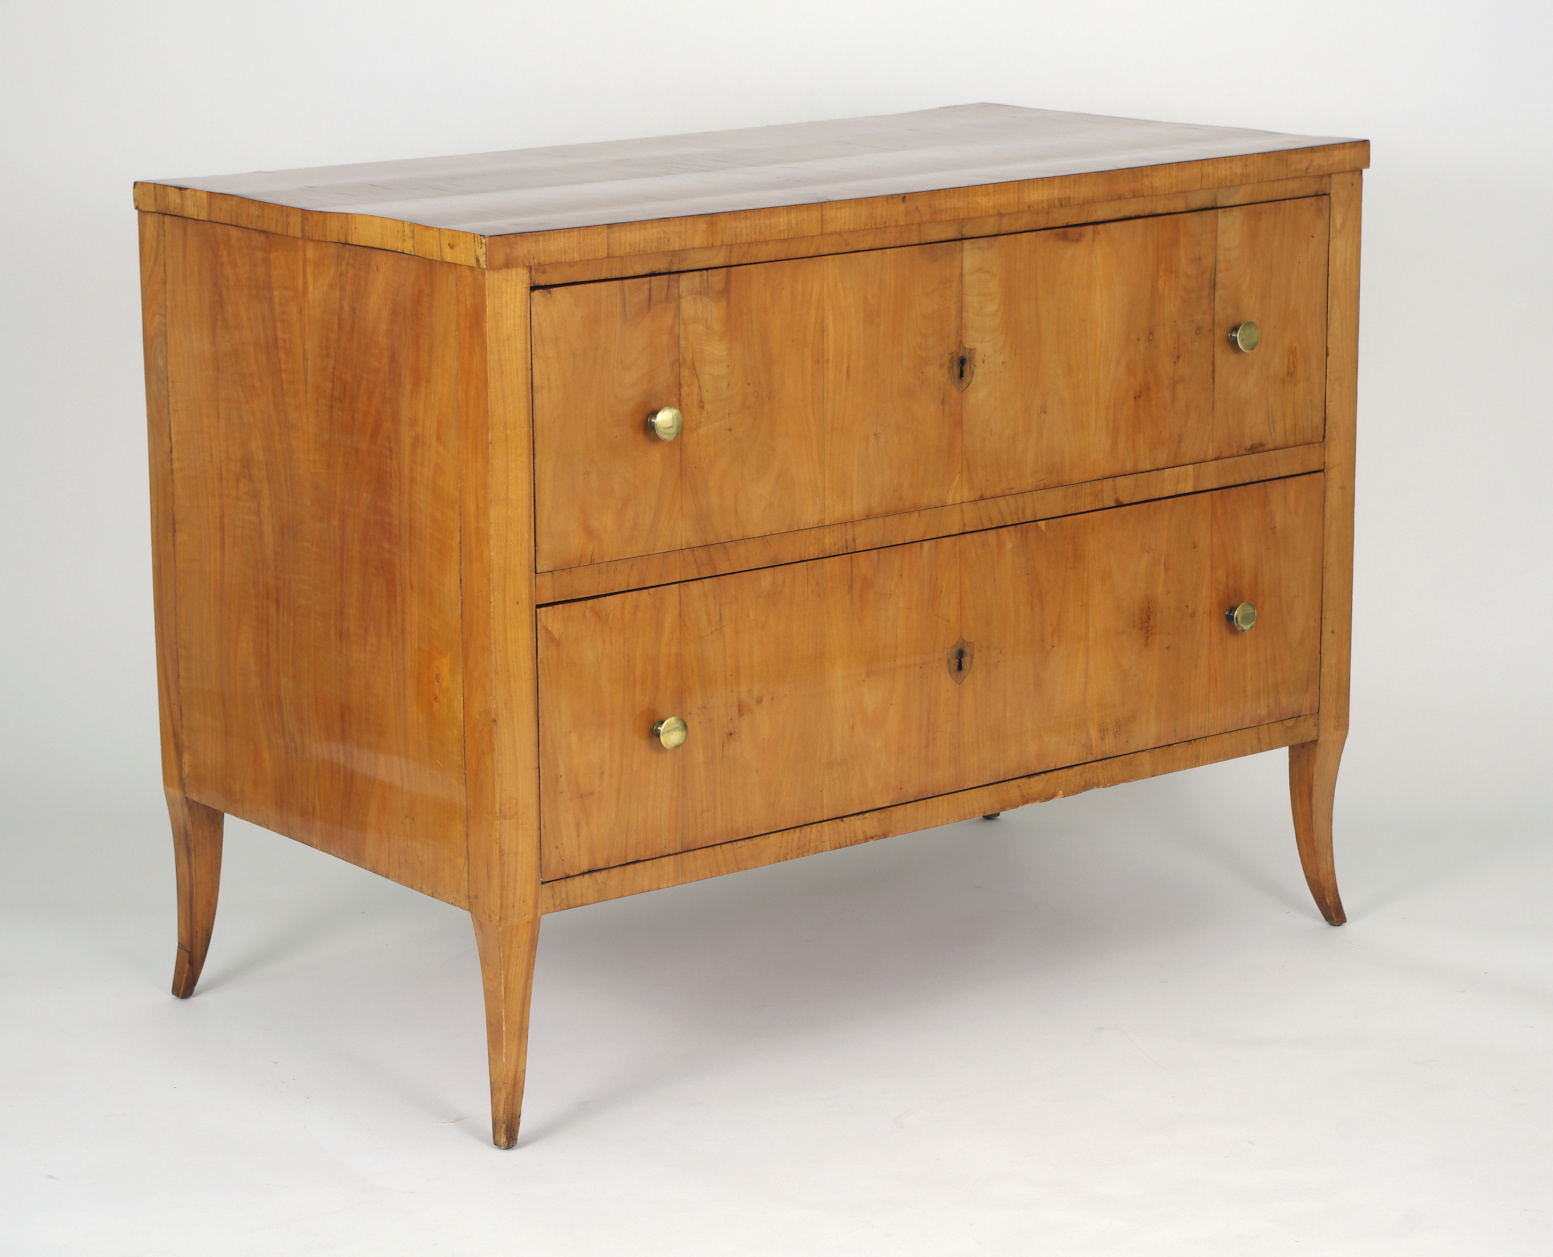 View 2: Biedermeier Cherry Chest of Drawers, c. 1810